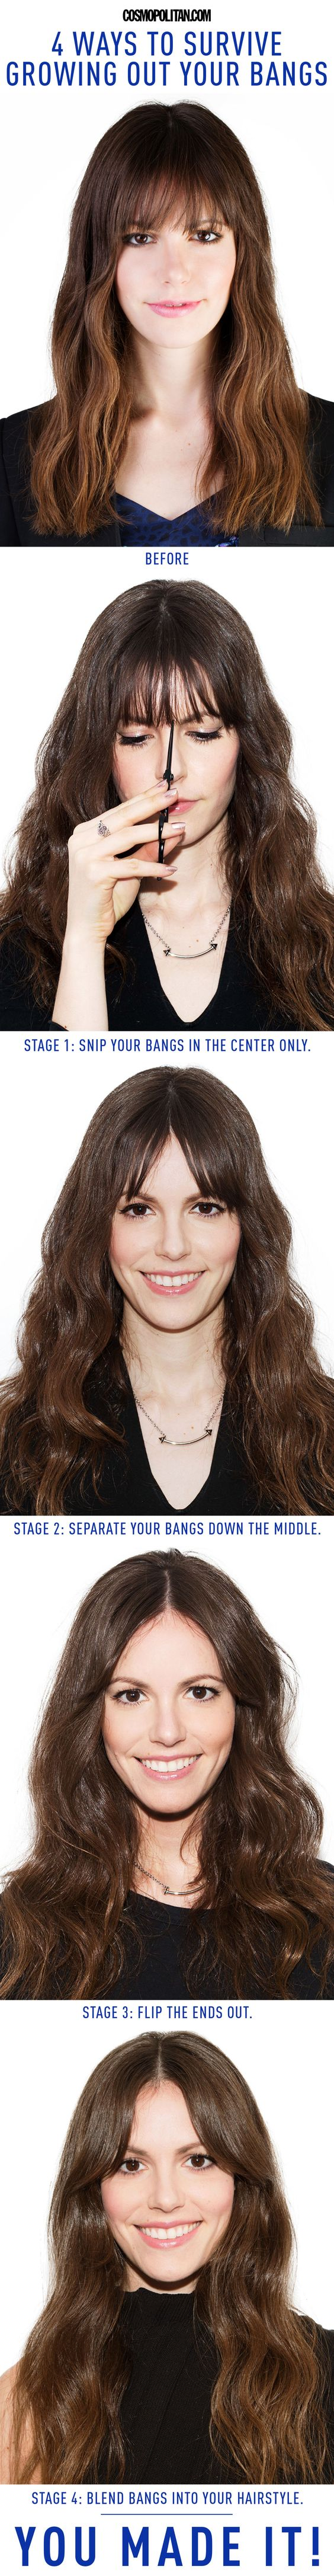 How-to-Style-Your-Bangs about